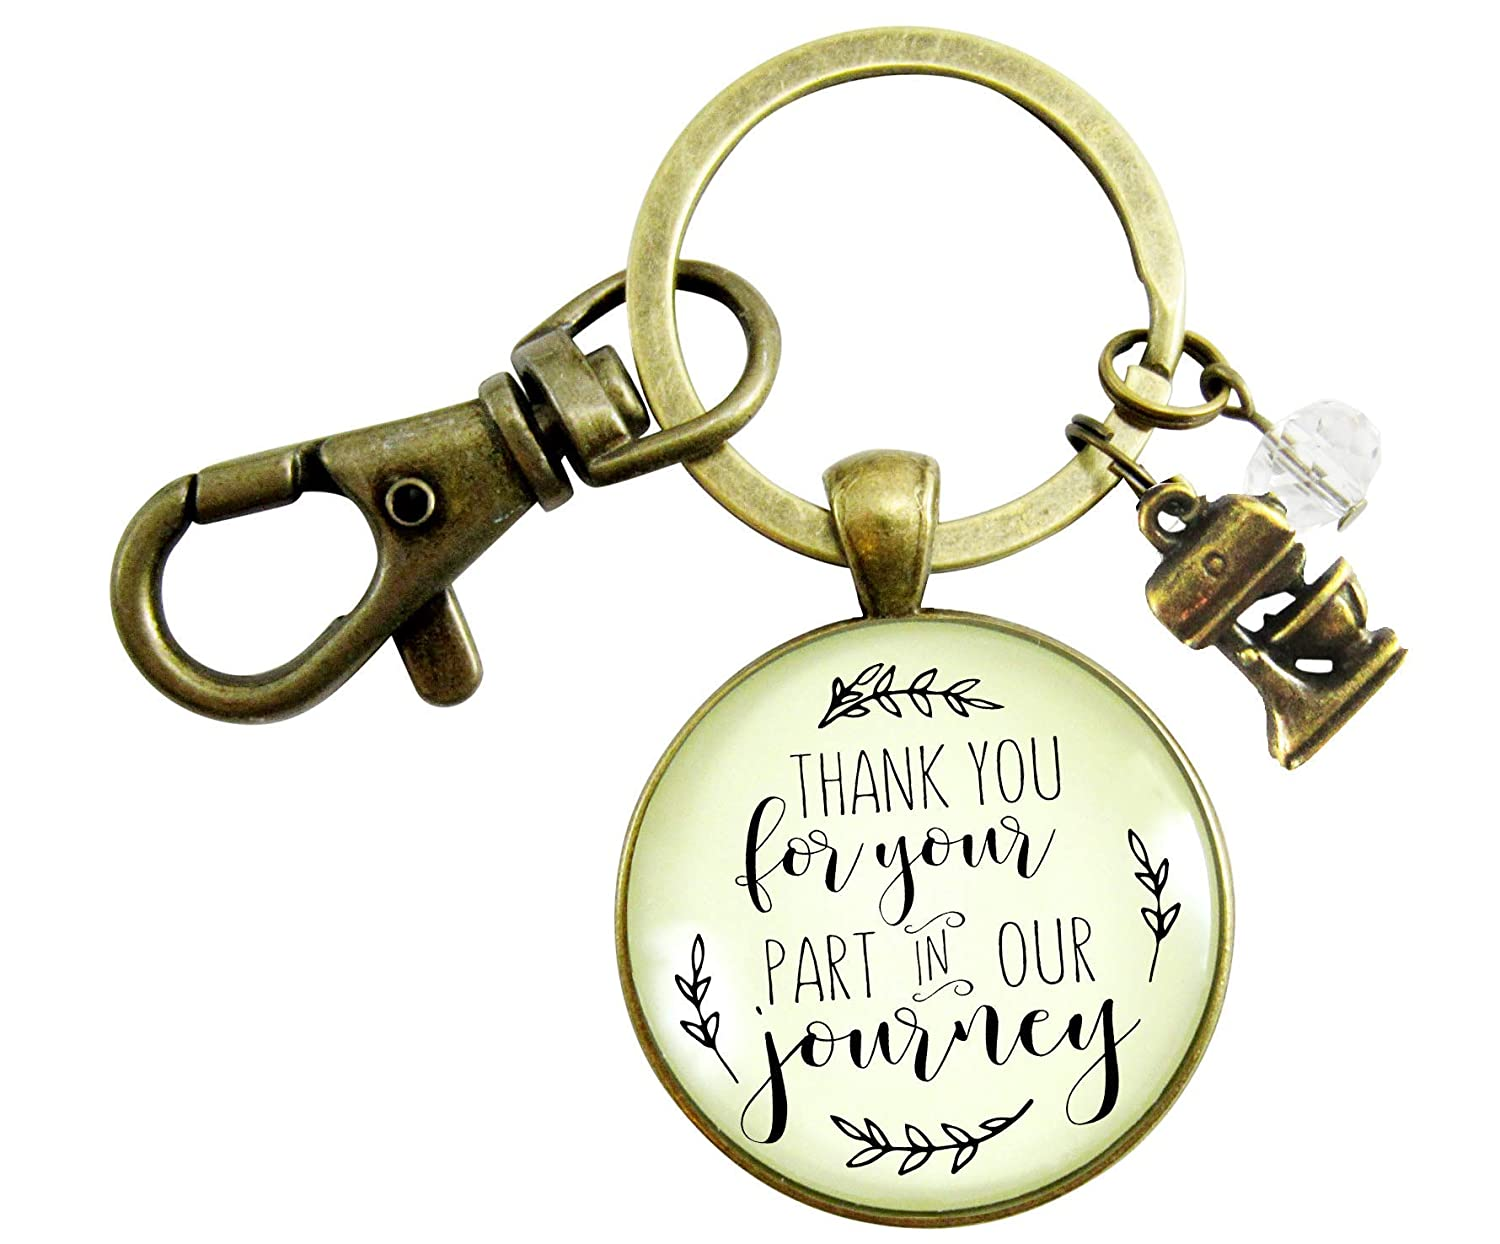 Wedding Cake Maker Gift Keychain Thank You For Your Part Rustic Pendant Baker Mixer Charm Appreciation Note Card - Gutsy Goodness